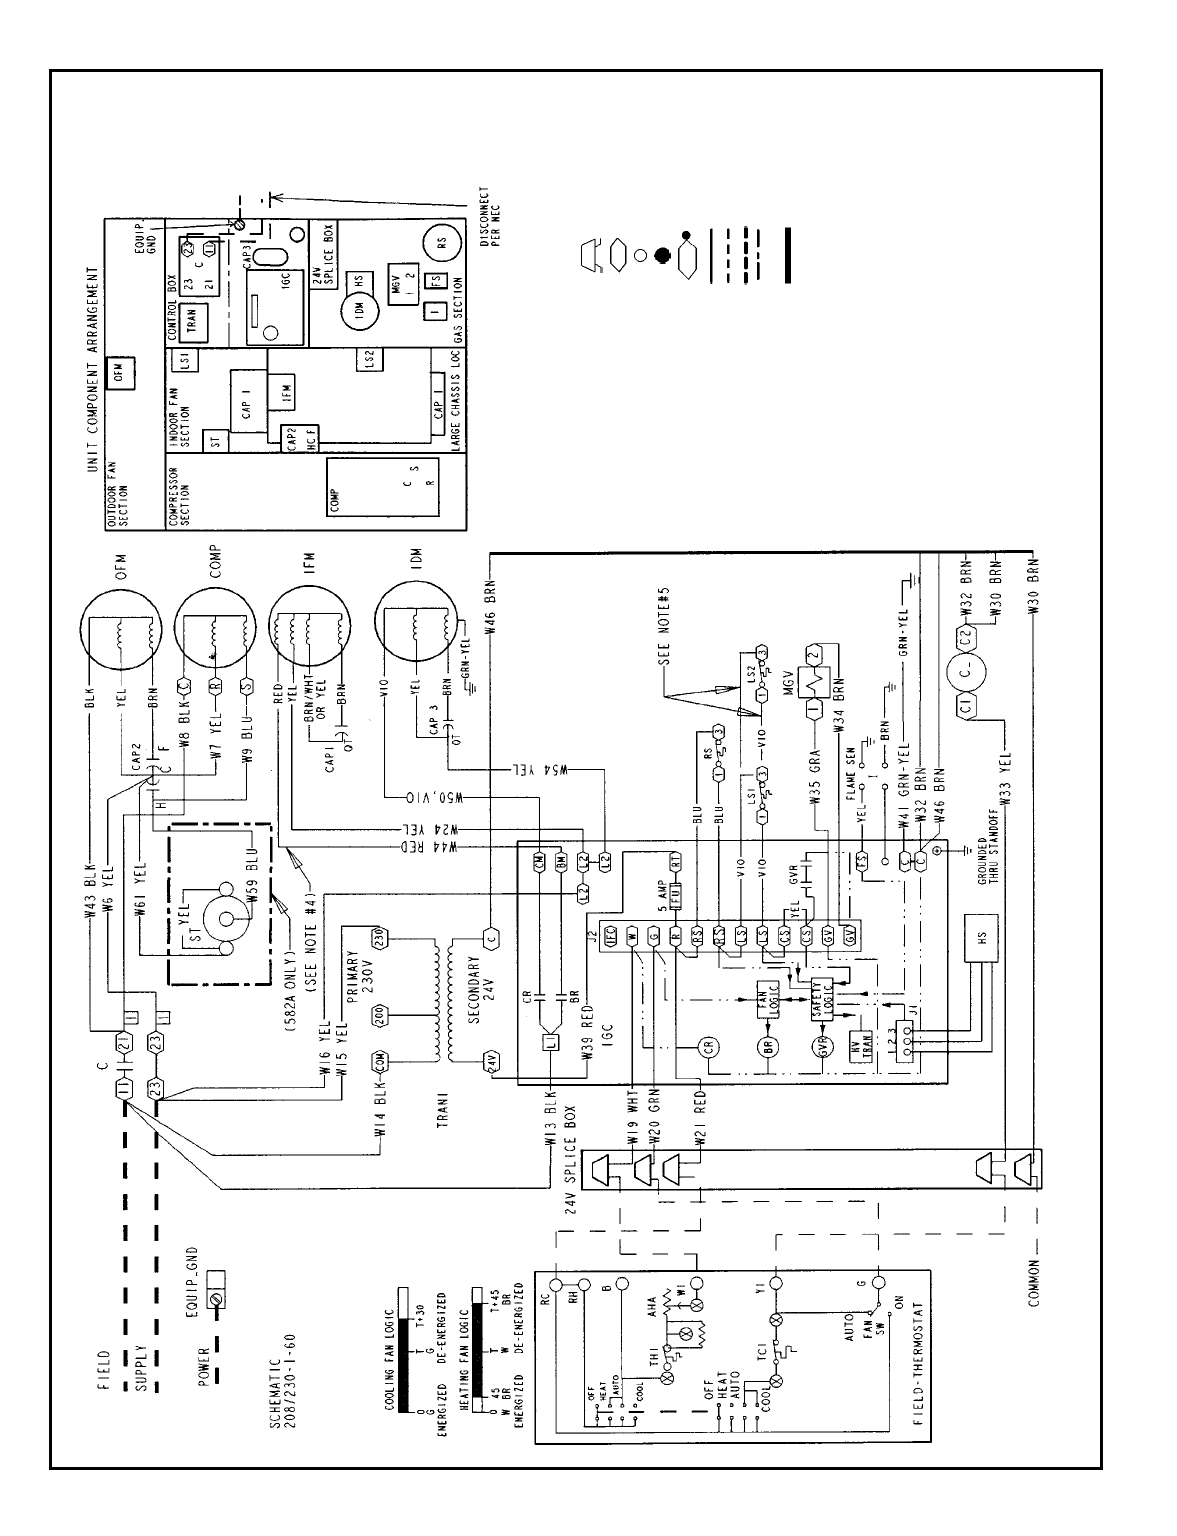 208 Wiring Diagrams Bryant 582a Typical Schematic 582a018 060 230 1 60 Legend